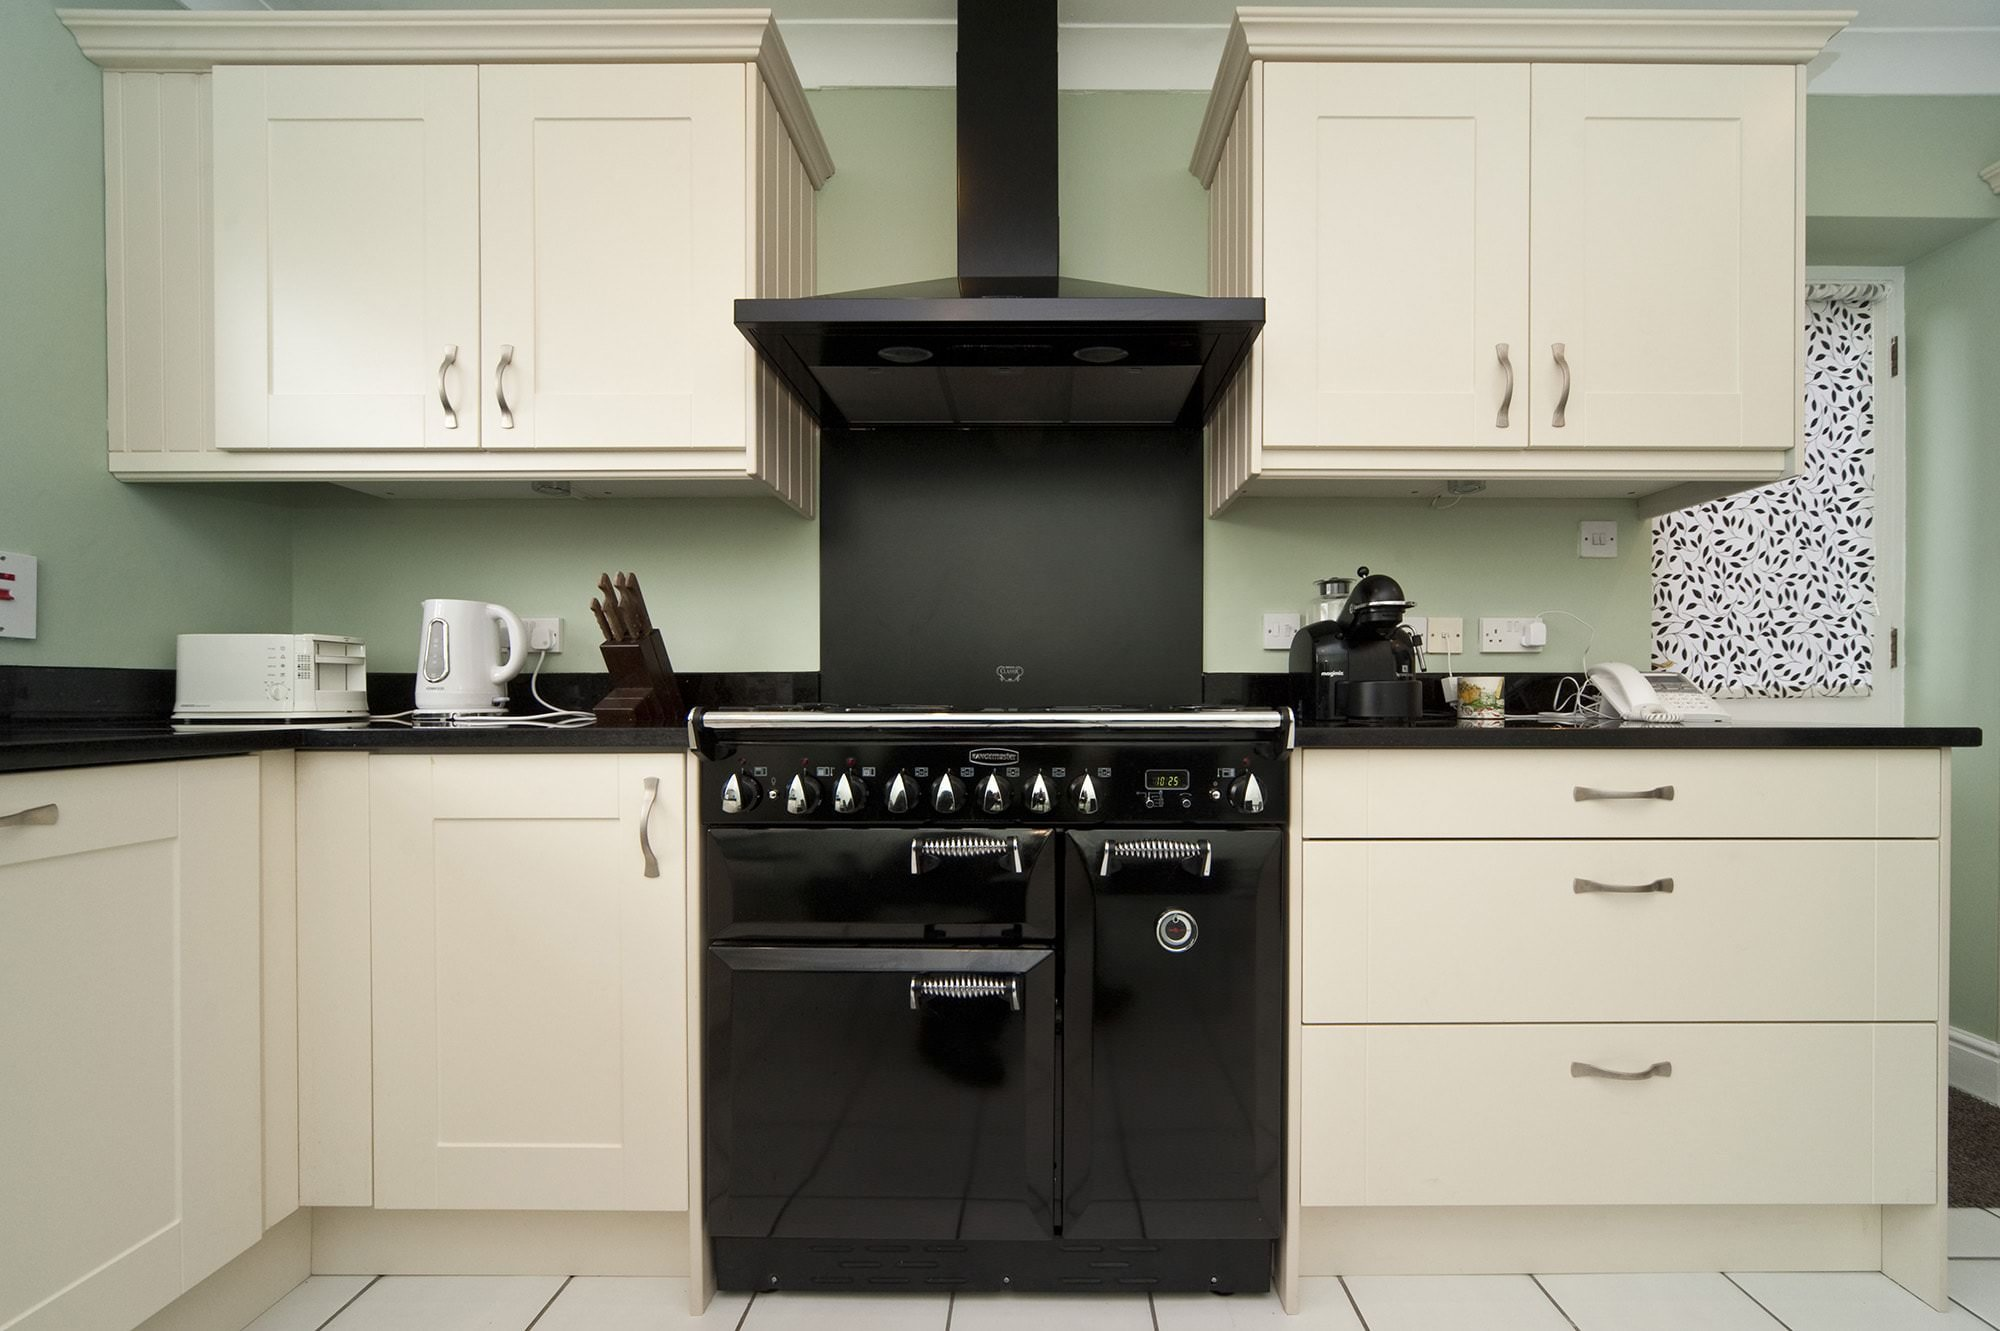 black-galaxy-granite-south-croydon-102952-a-rangemaster-min